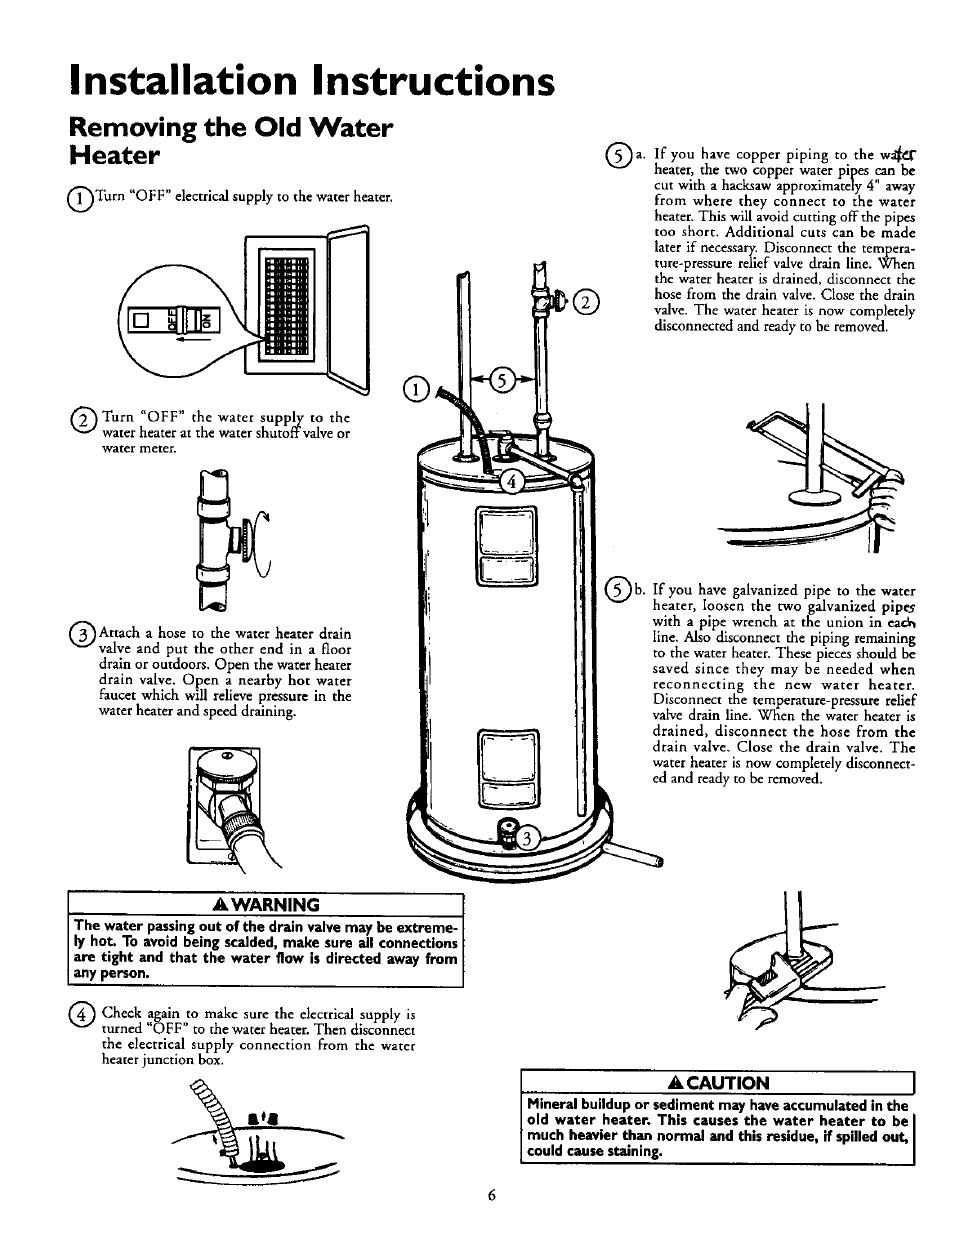 Removing the old water heater, A warning, A caution